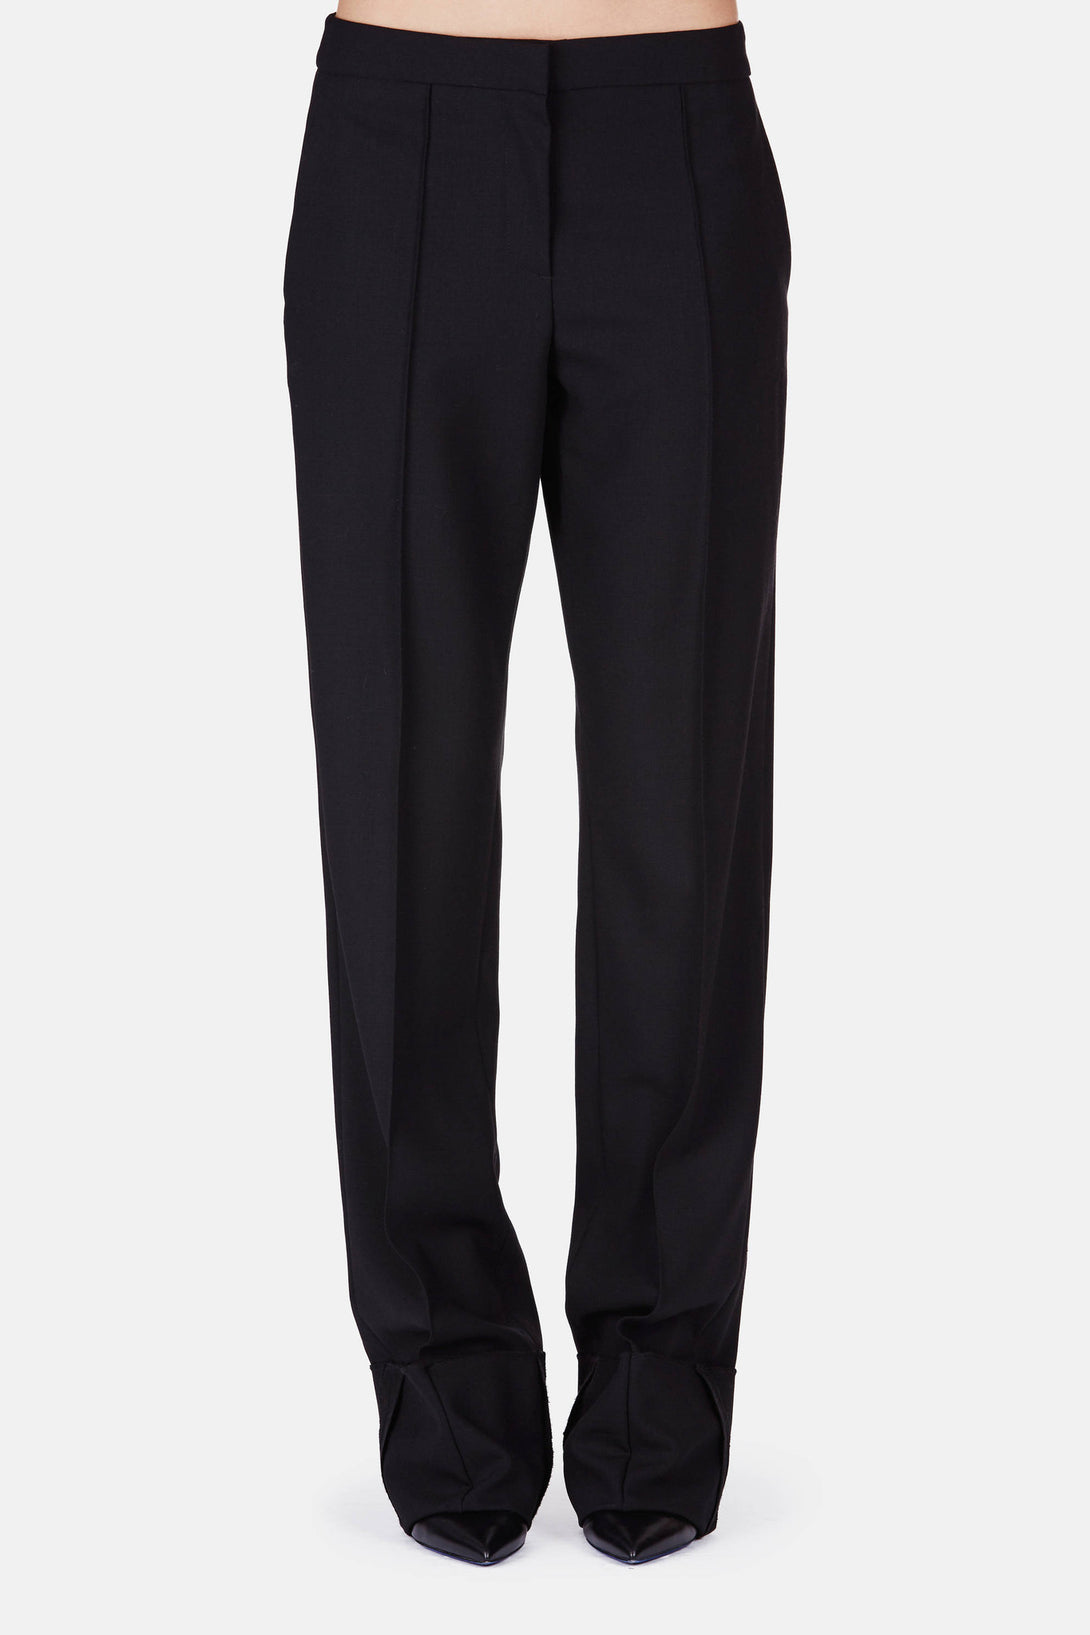 Trouser 12 Gentlemen's Trouser with Exposed Cuff - Warm Black